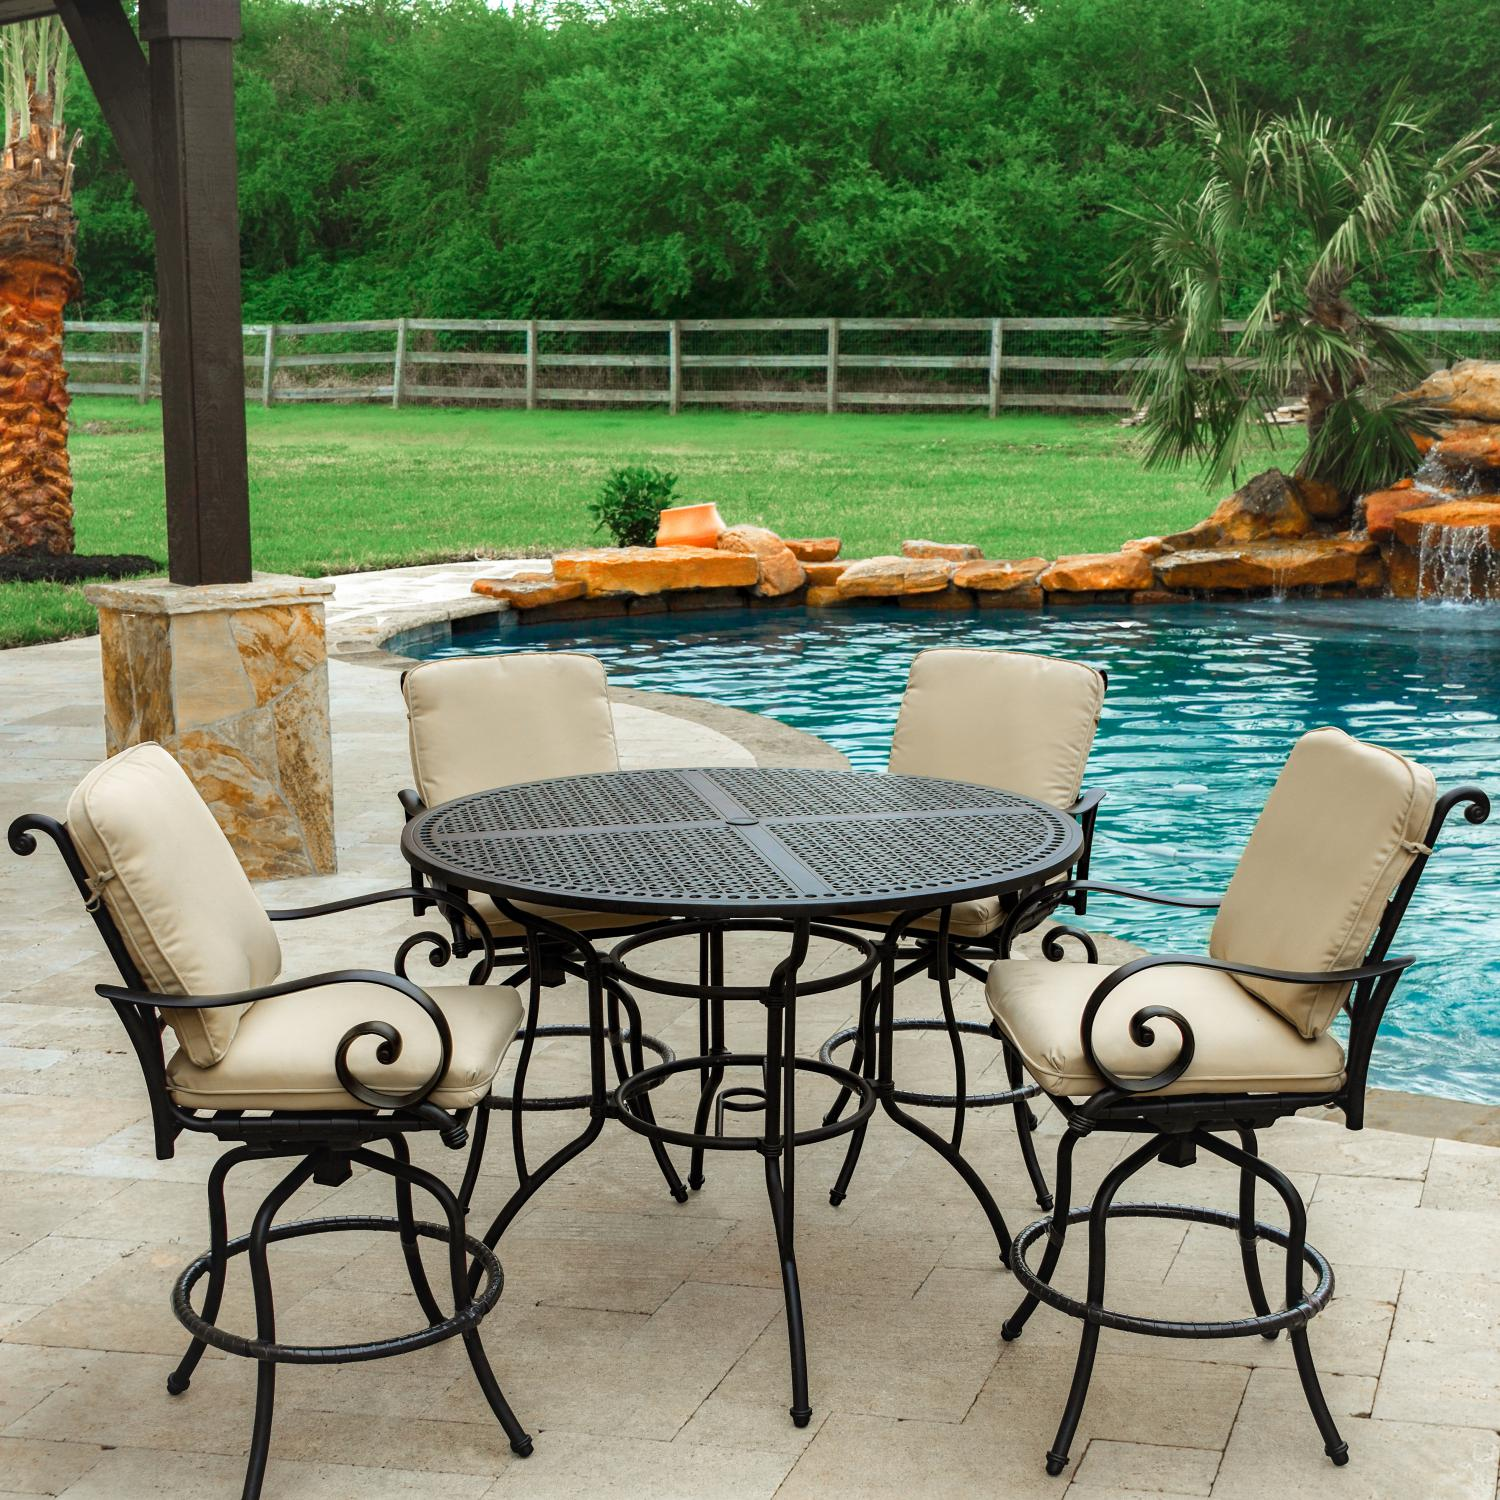 Furniture enjoy your new outdoor furniture with bar for Small patio sets on sale